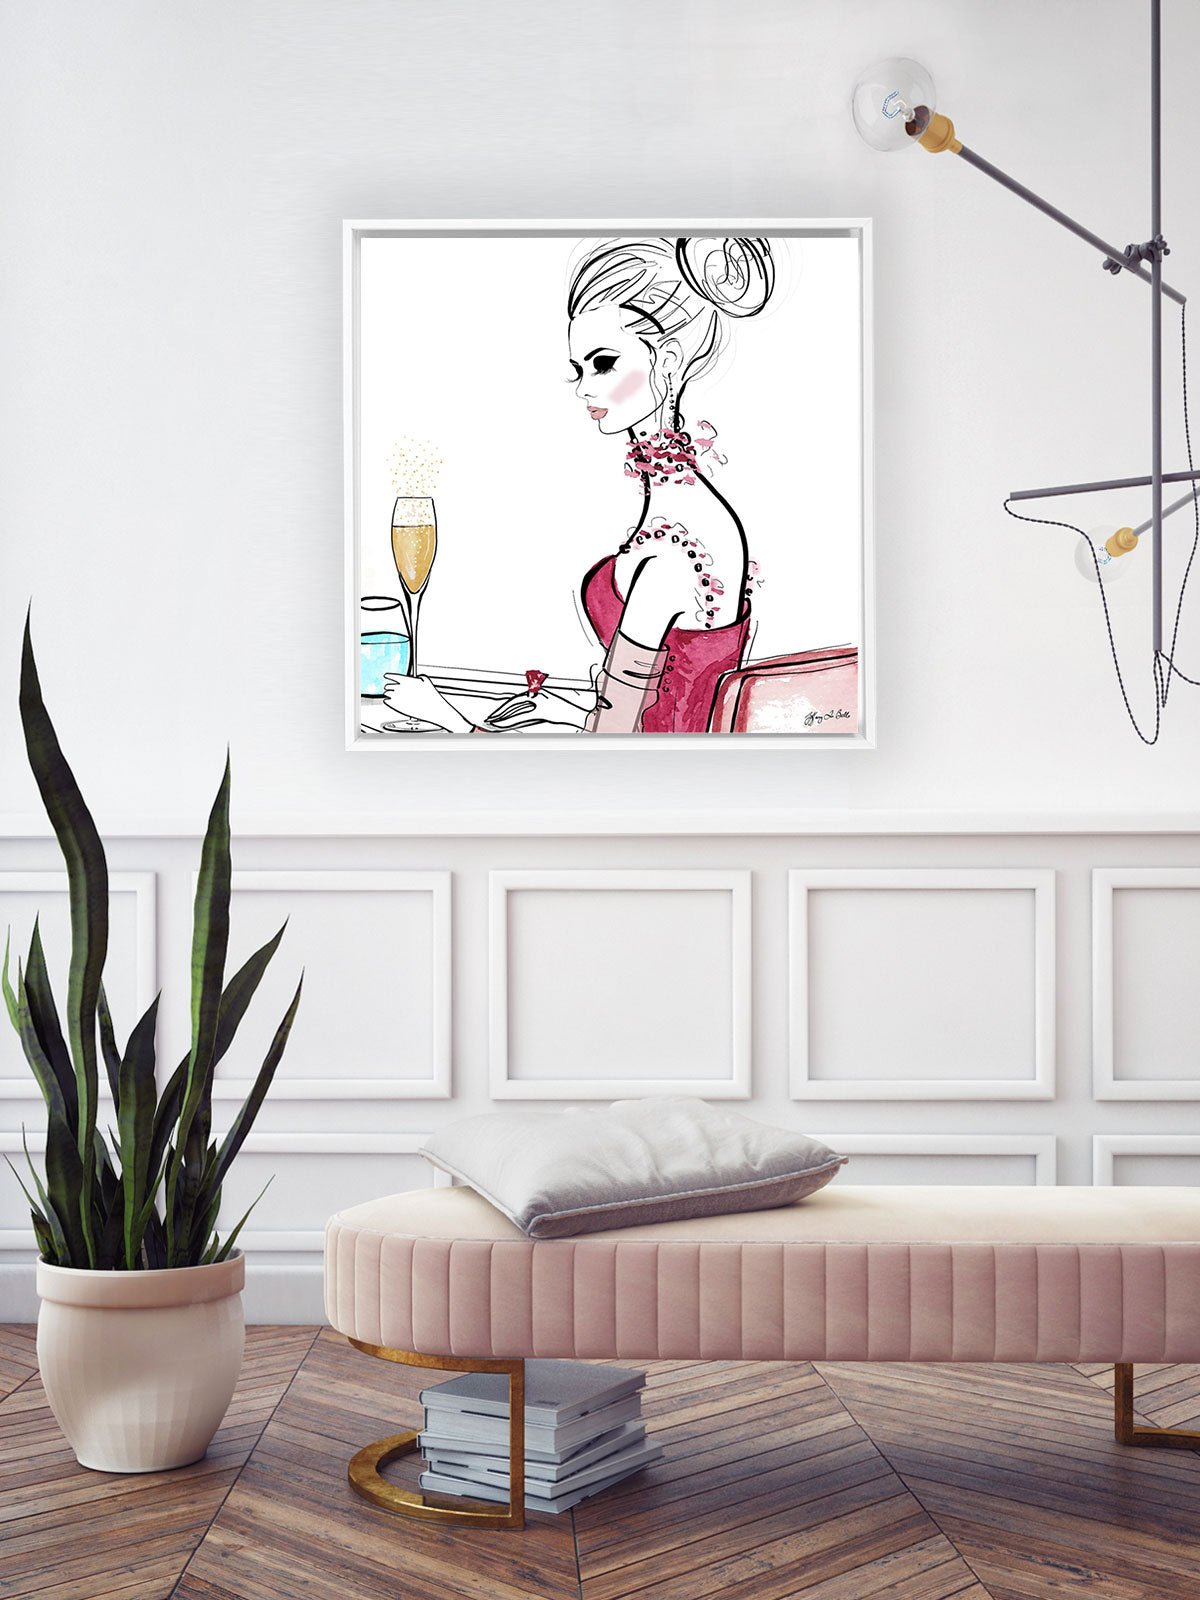 A Champagne Moment - Illustration - Canvas Gallery Print - Unframed or Framed - Tiffany La Belle